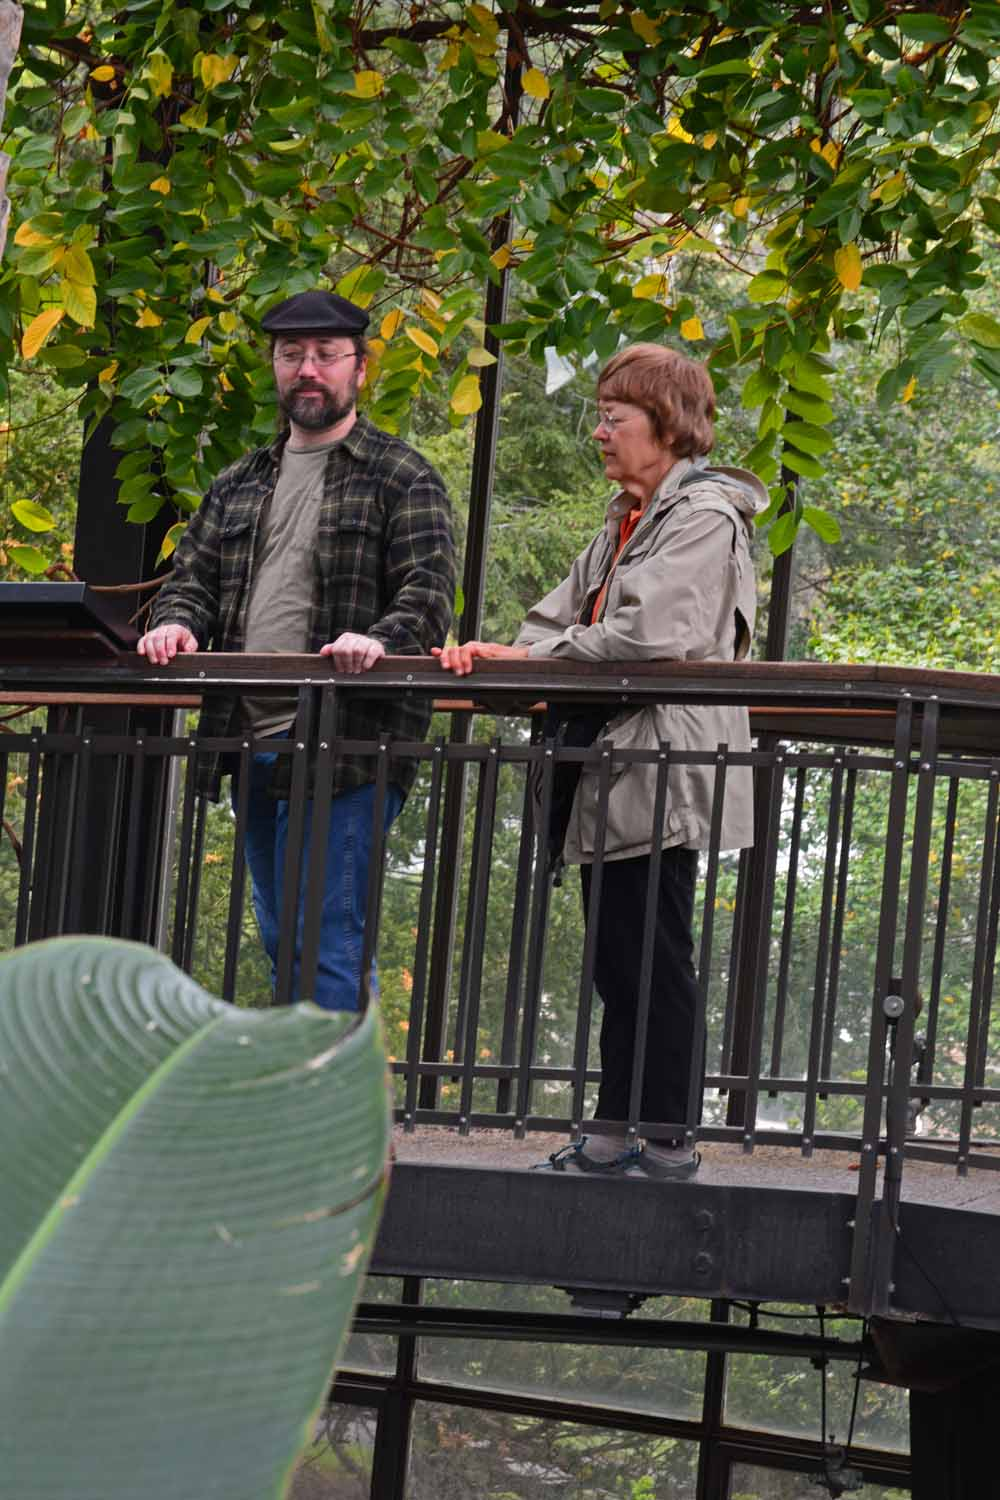 Jan and Paul taking in the sights at Longwood Gardens